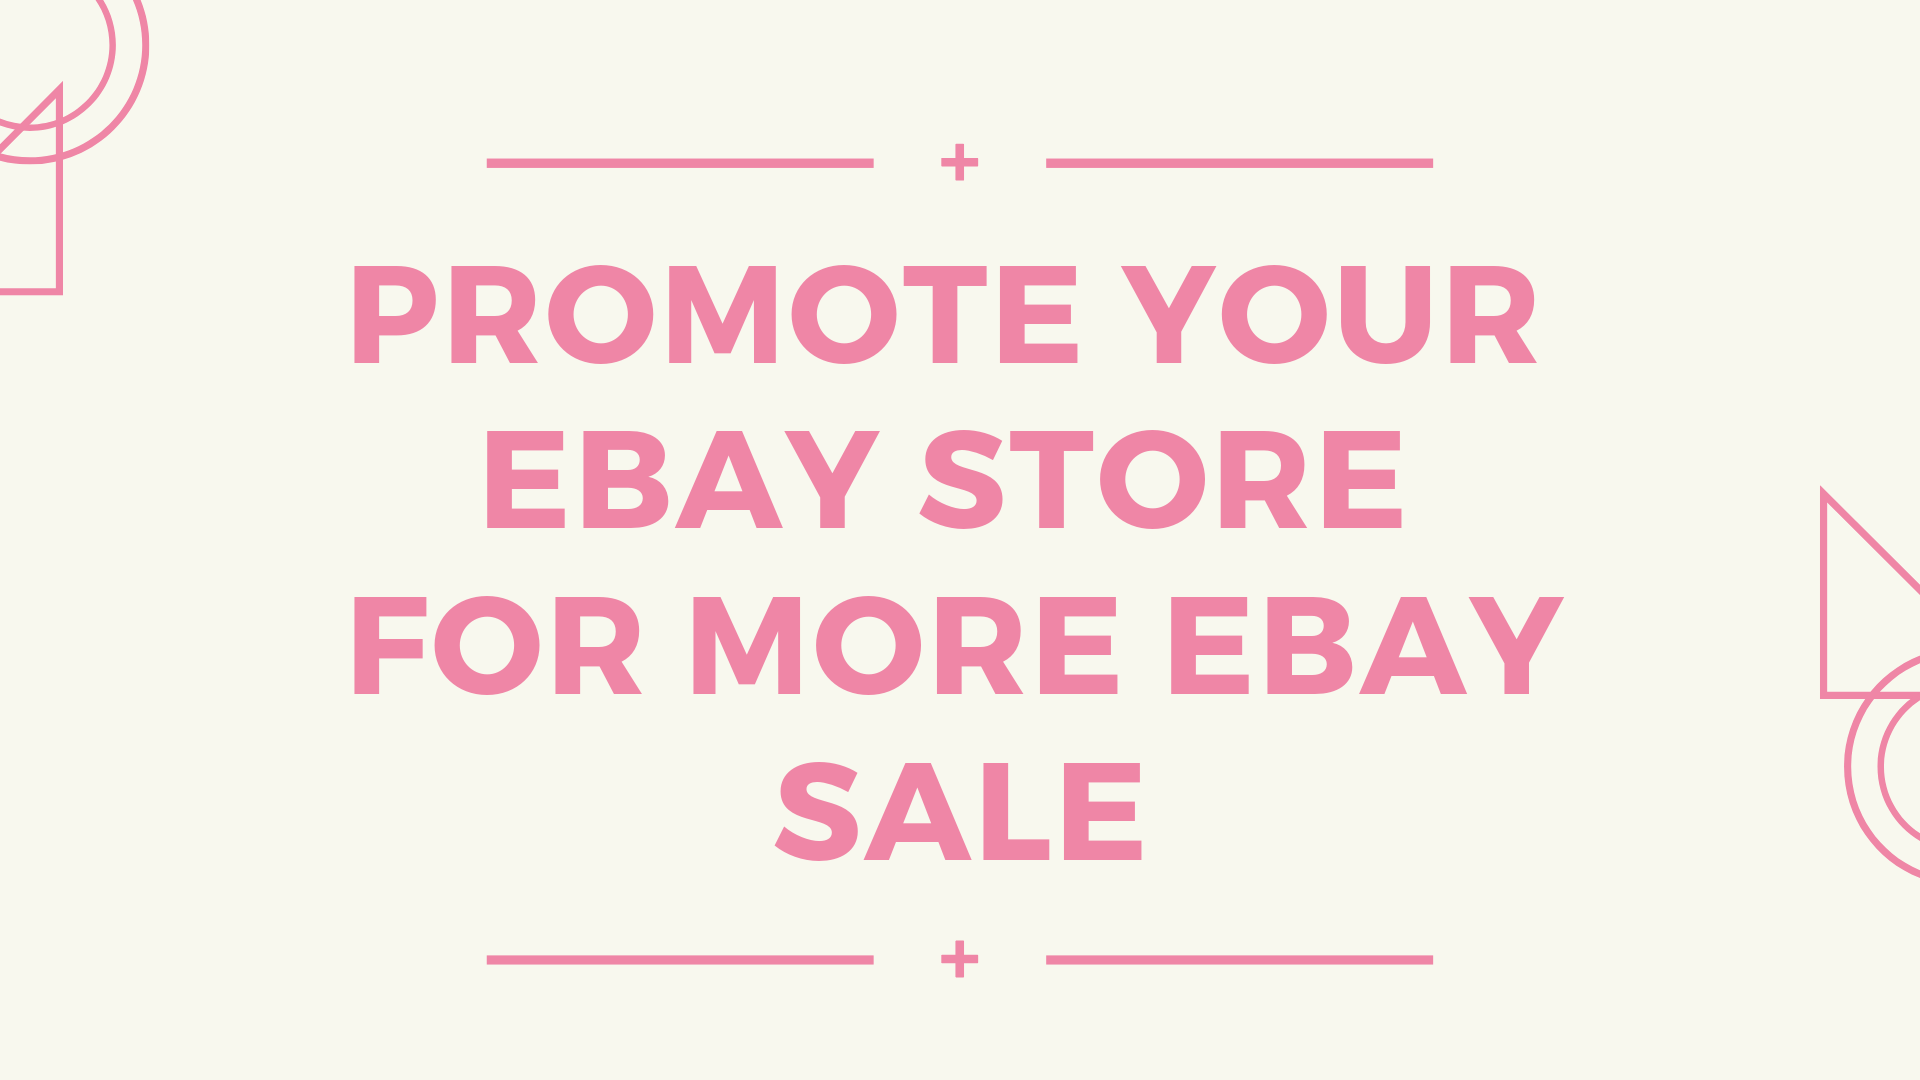 promote your ebay store for more ebay sale